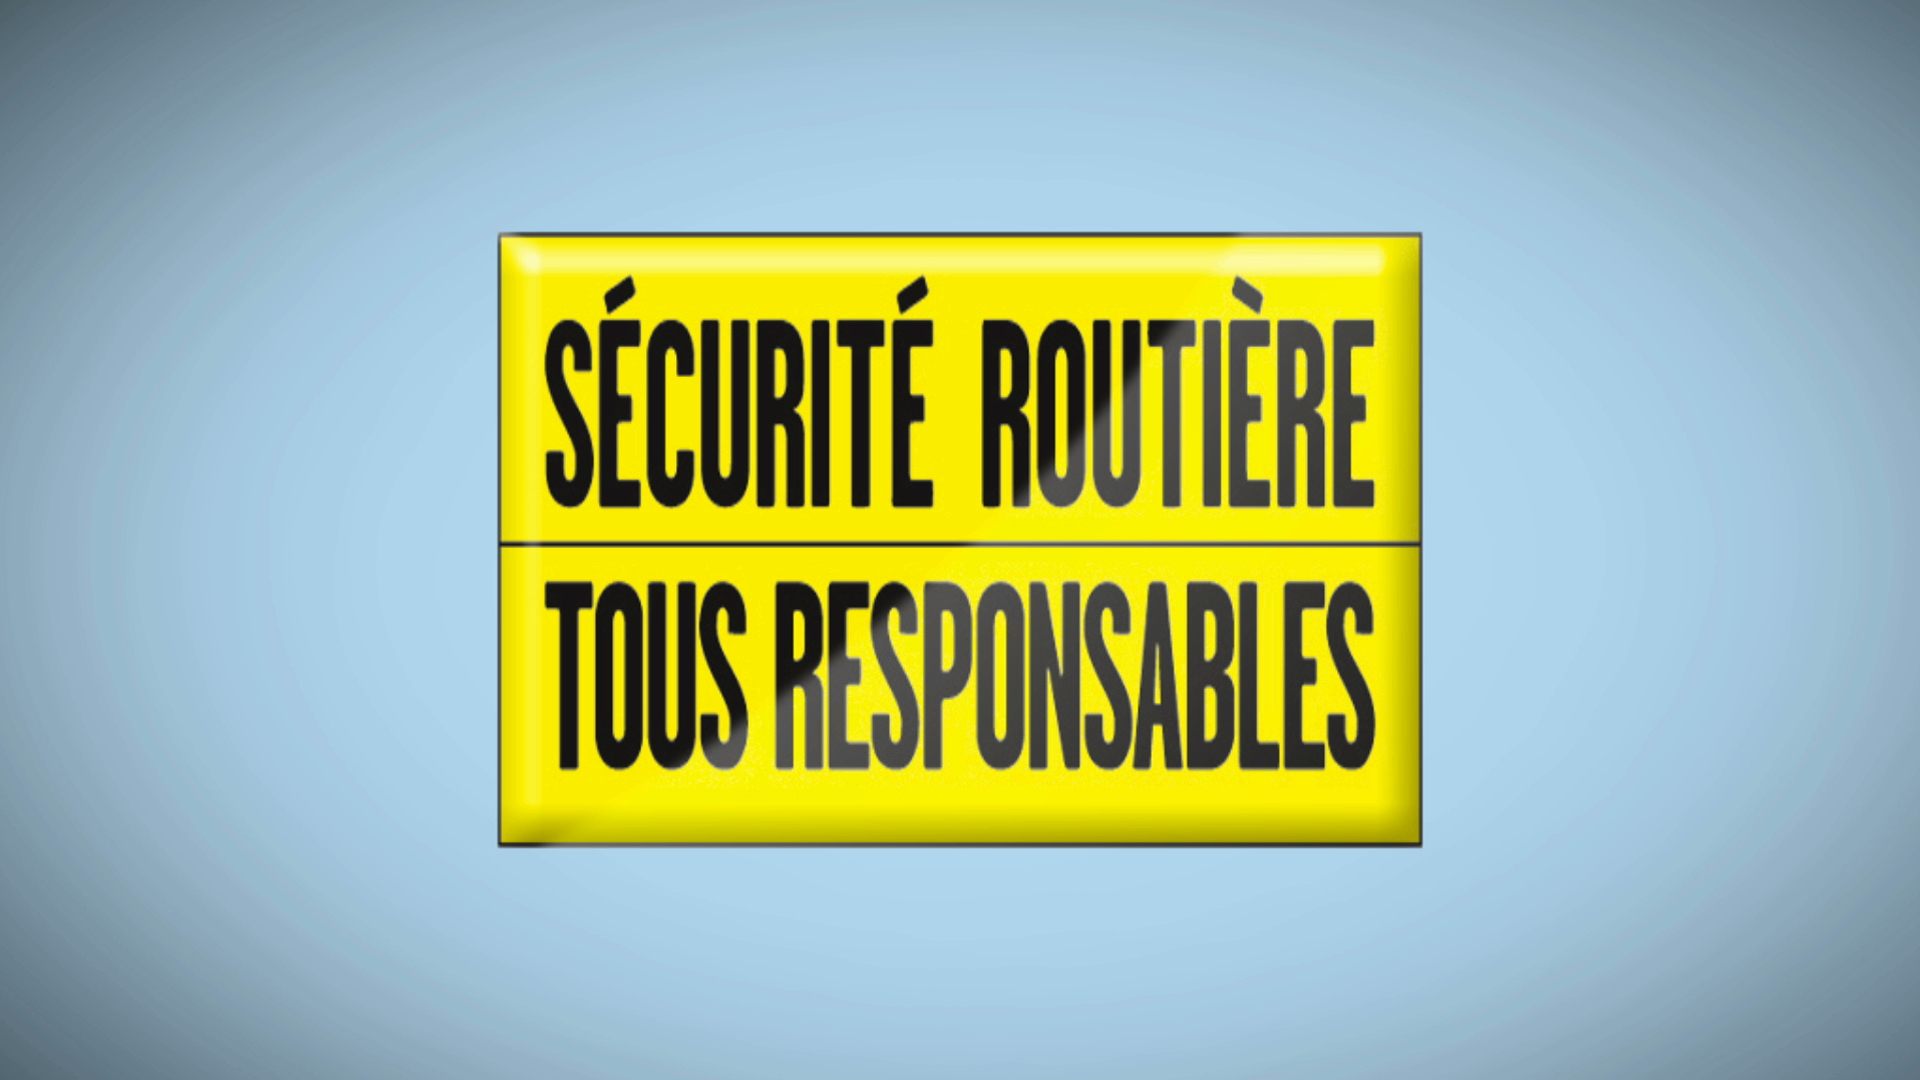 Conseil-national-de-la-securite-routiere